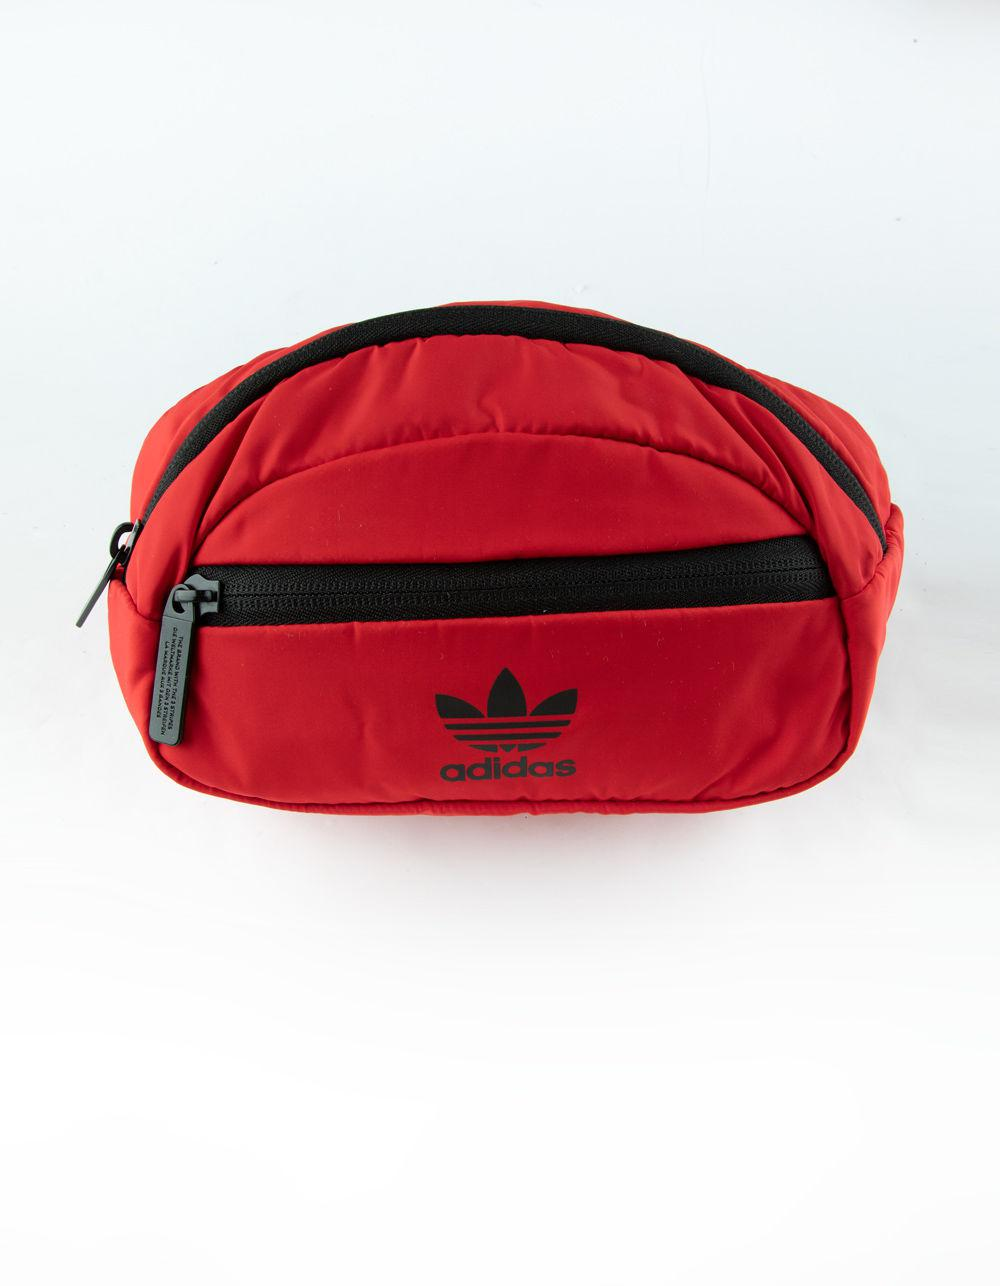 696f2f9d155 Lyst - adidas Originals National Red Fanny Pack in Red for Men